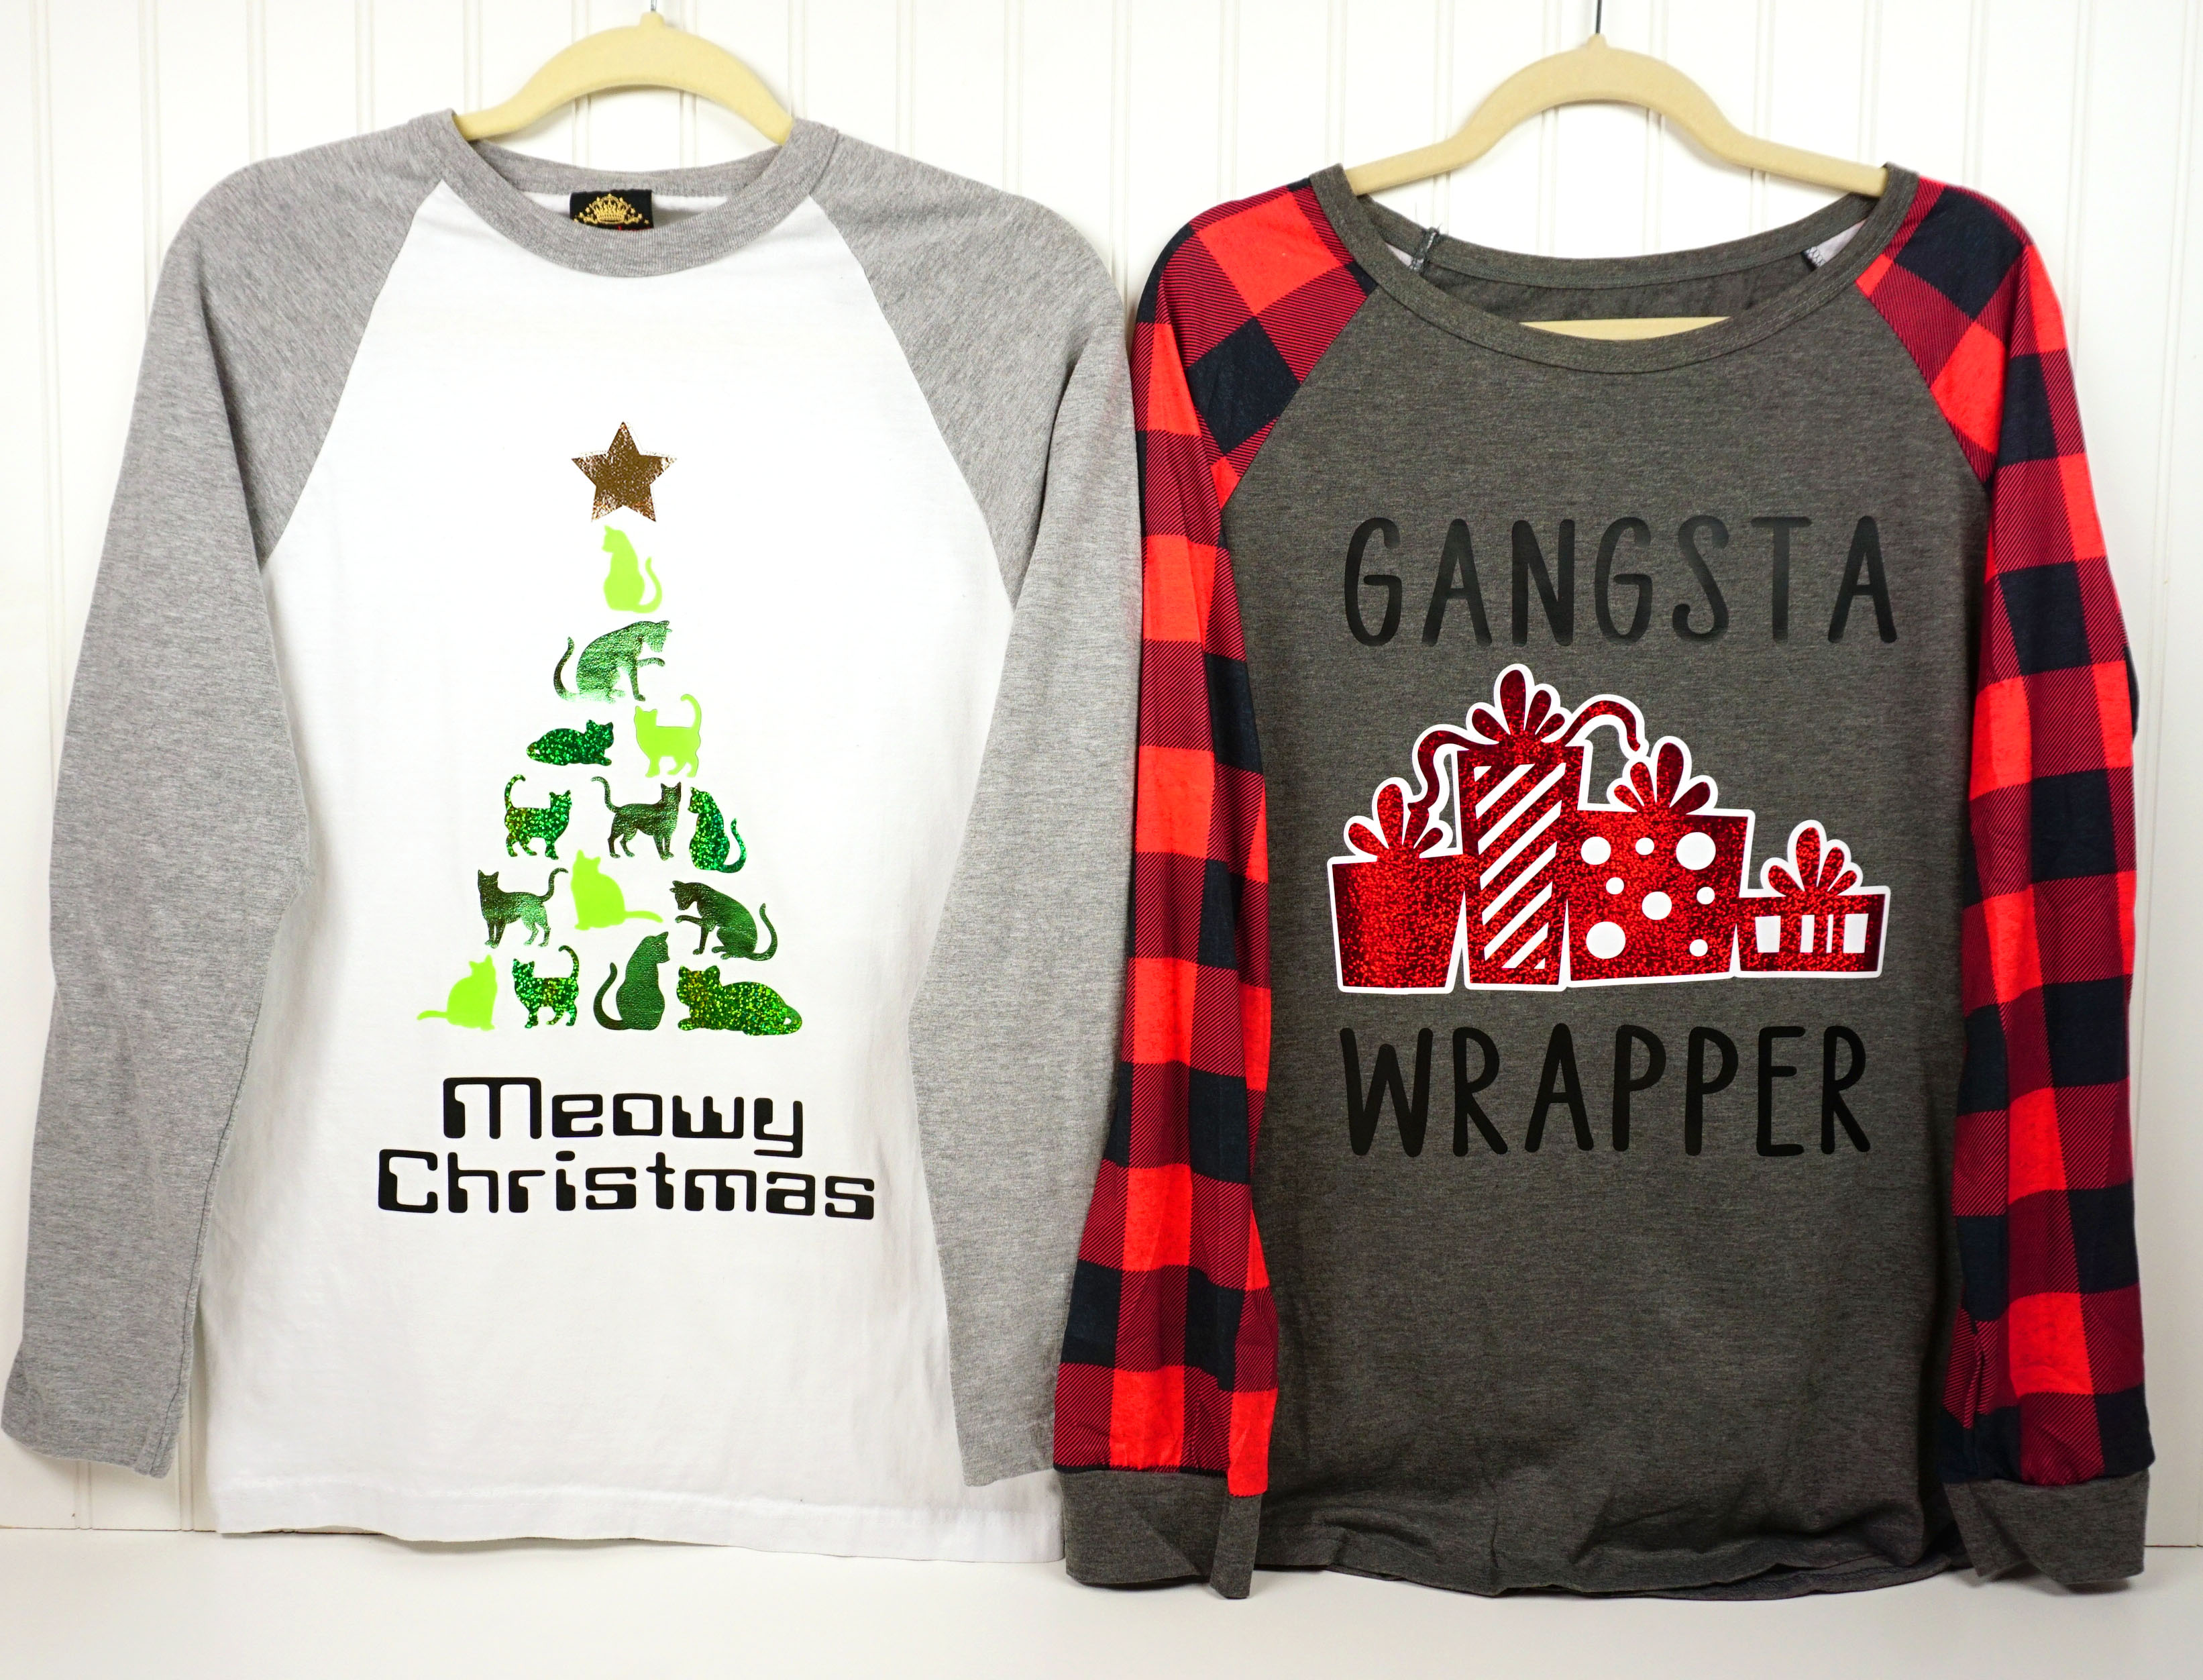 647028a17 These funny Christmas shirts are going to get a TON of wear this holiday  season!